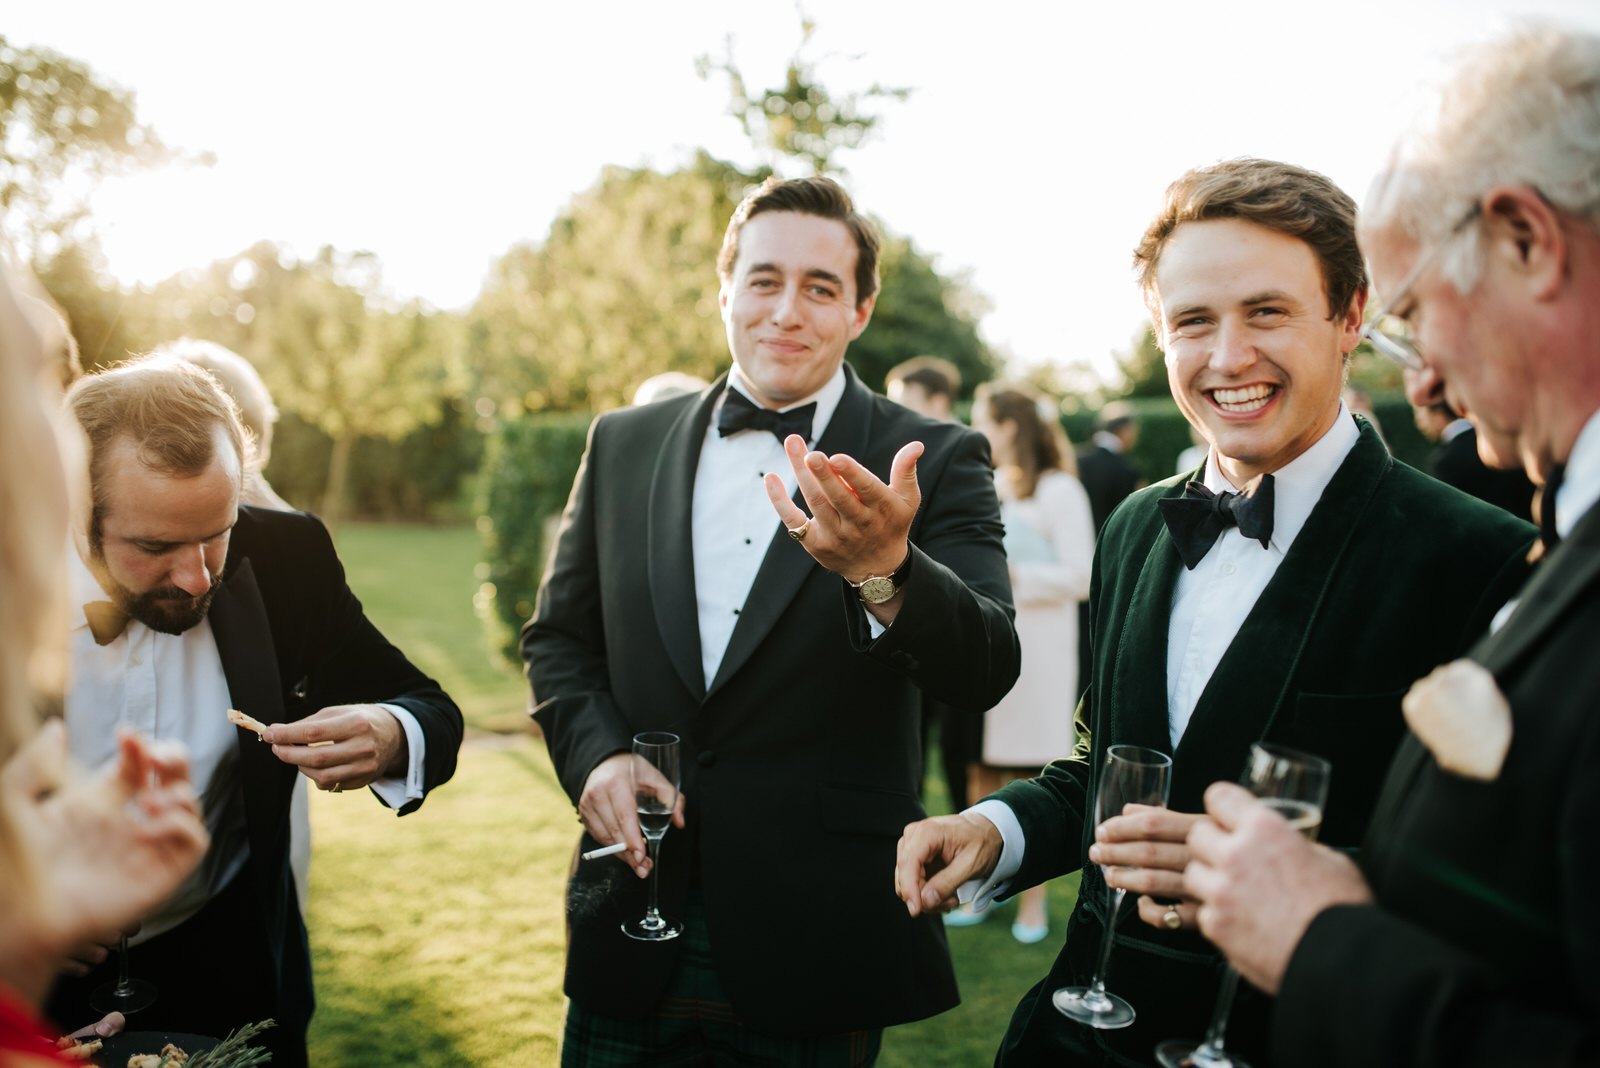 Groomsmen share a laugh and a drink during wedding reception in